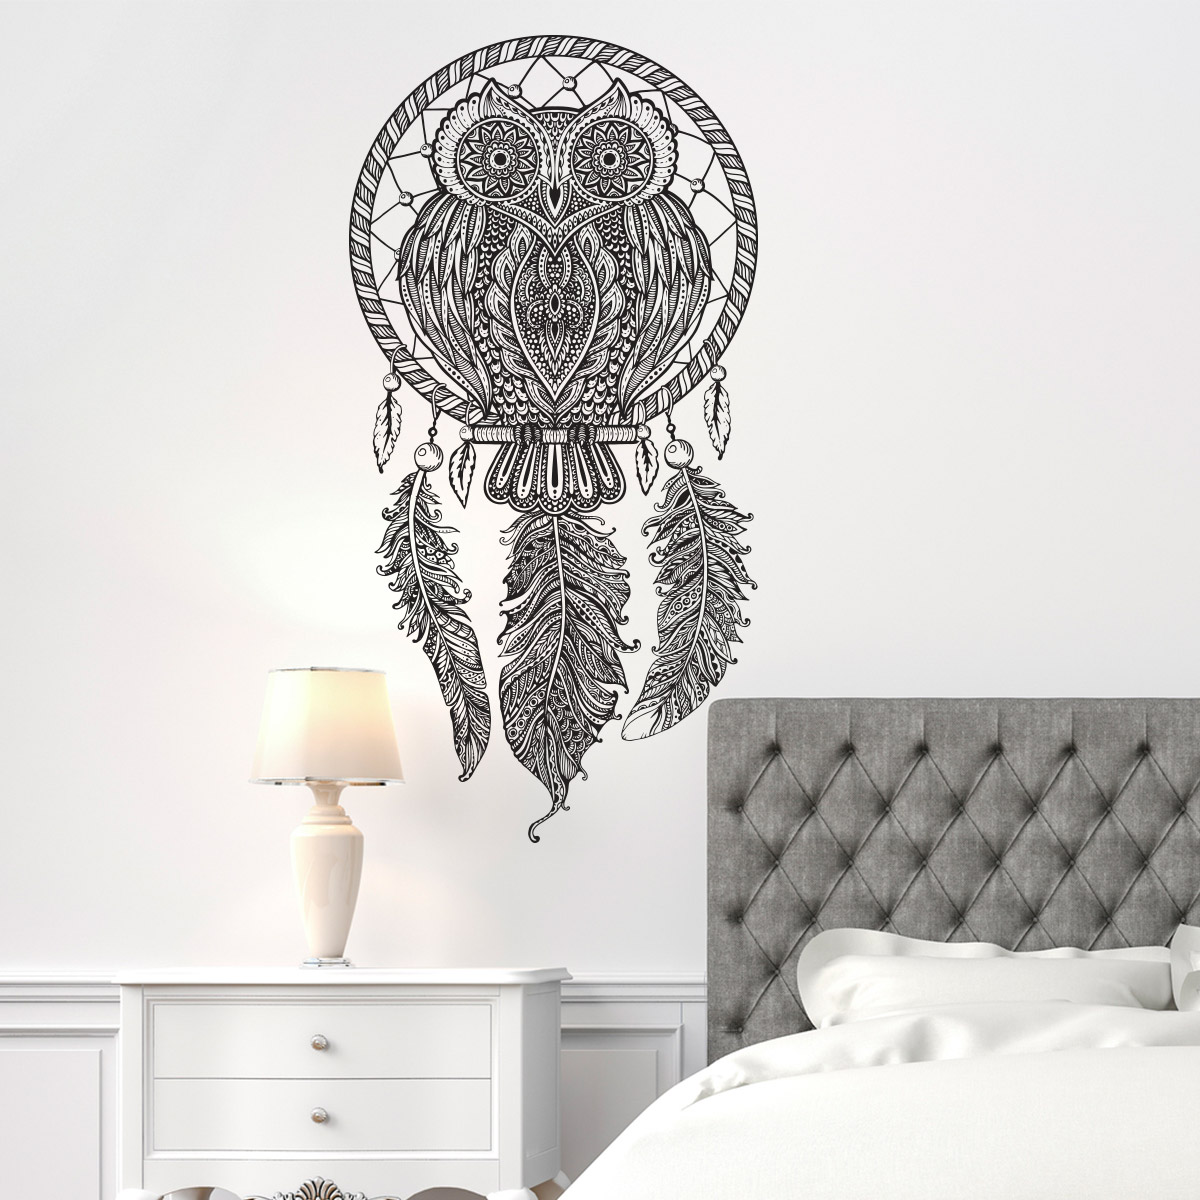 sticker boh me attrape r ves hibou stickers chambre t tes de lit ambiance sticker. Black Bedroom Furniture Sets. Home Design Ideas